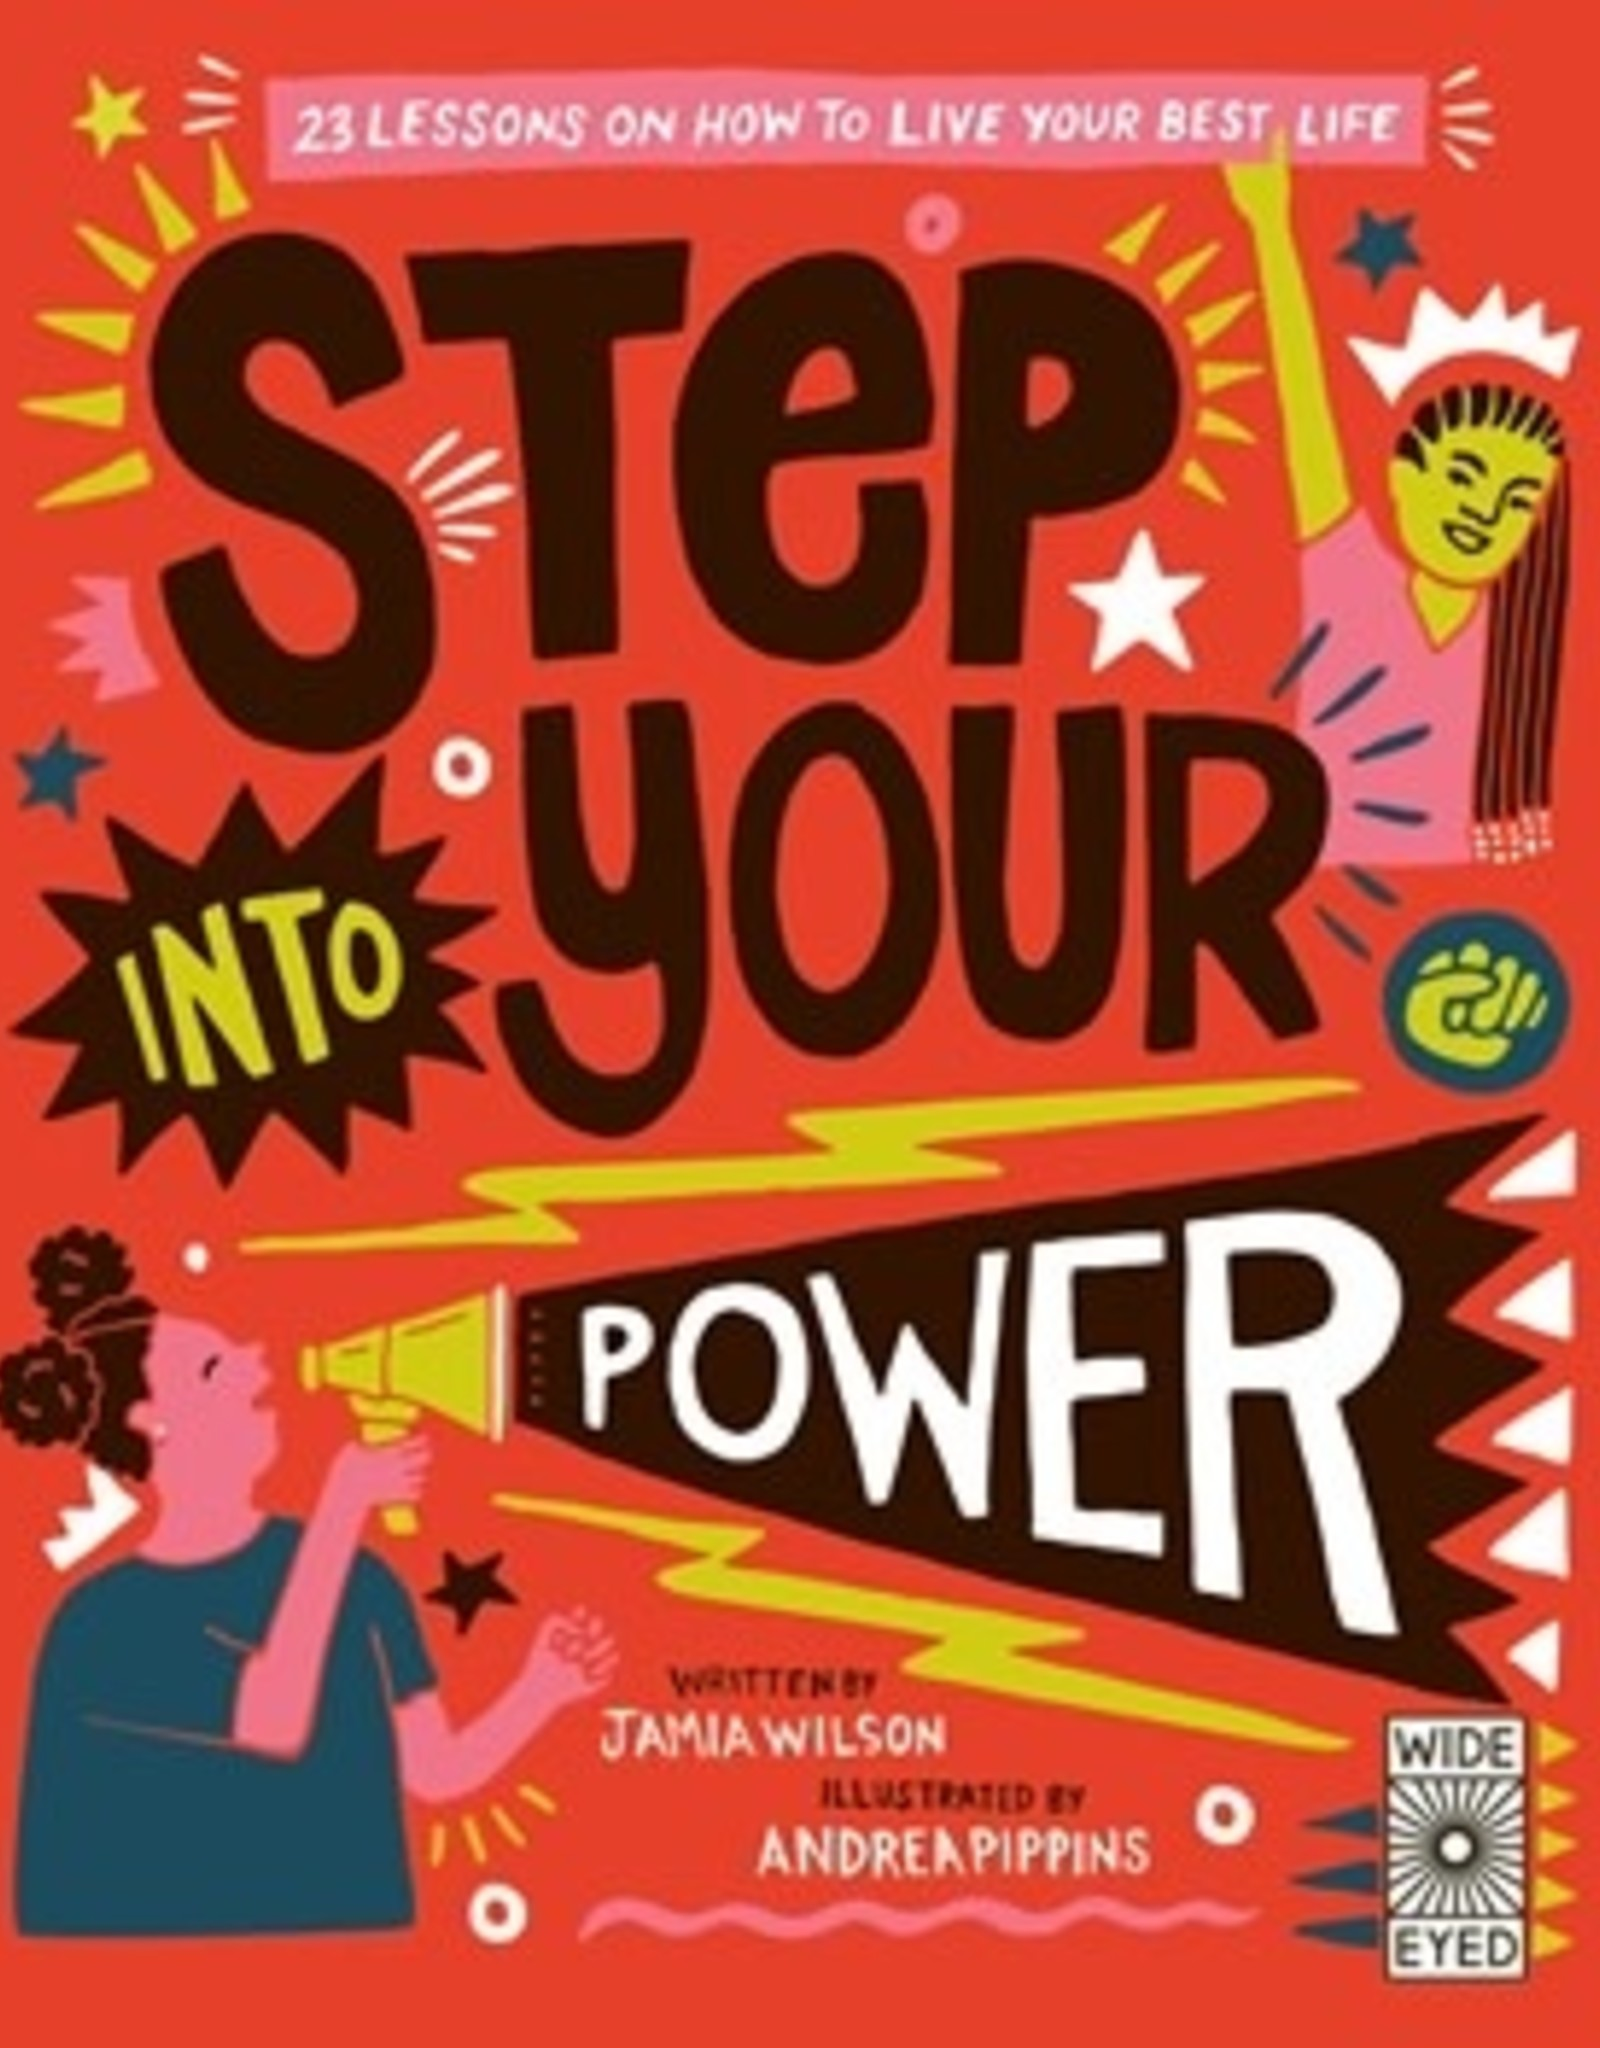 Quarto Wide Eyed Step into your Power